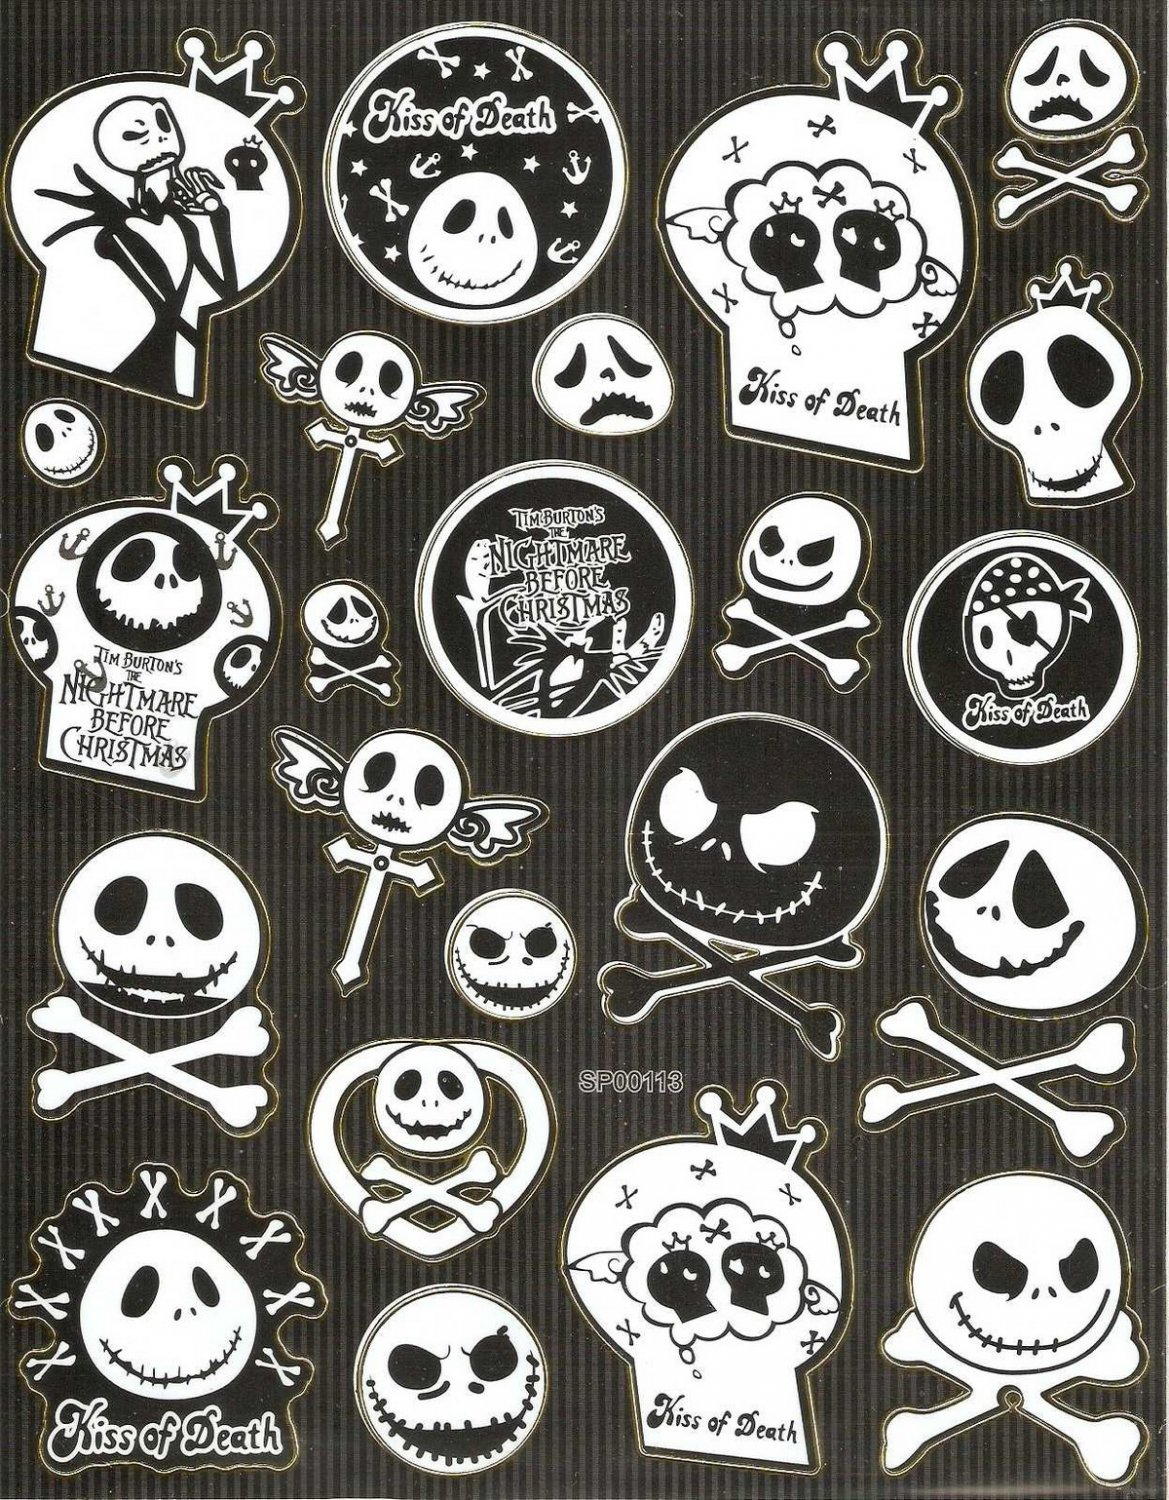 10 Big sheets Nightmare Before Christmas Sticker Buy 2 lots Bonus 1 #NBC SP00113